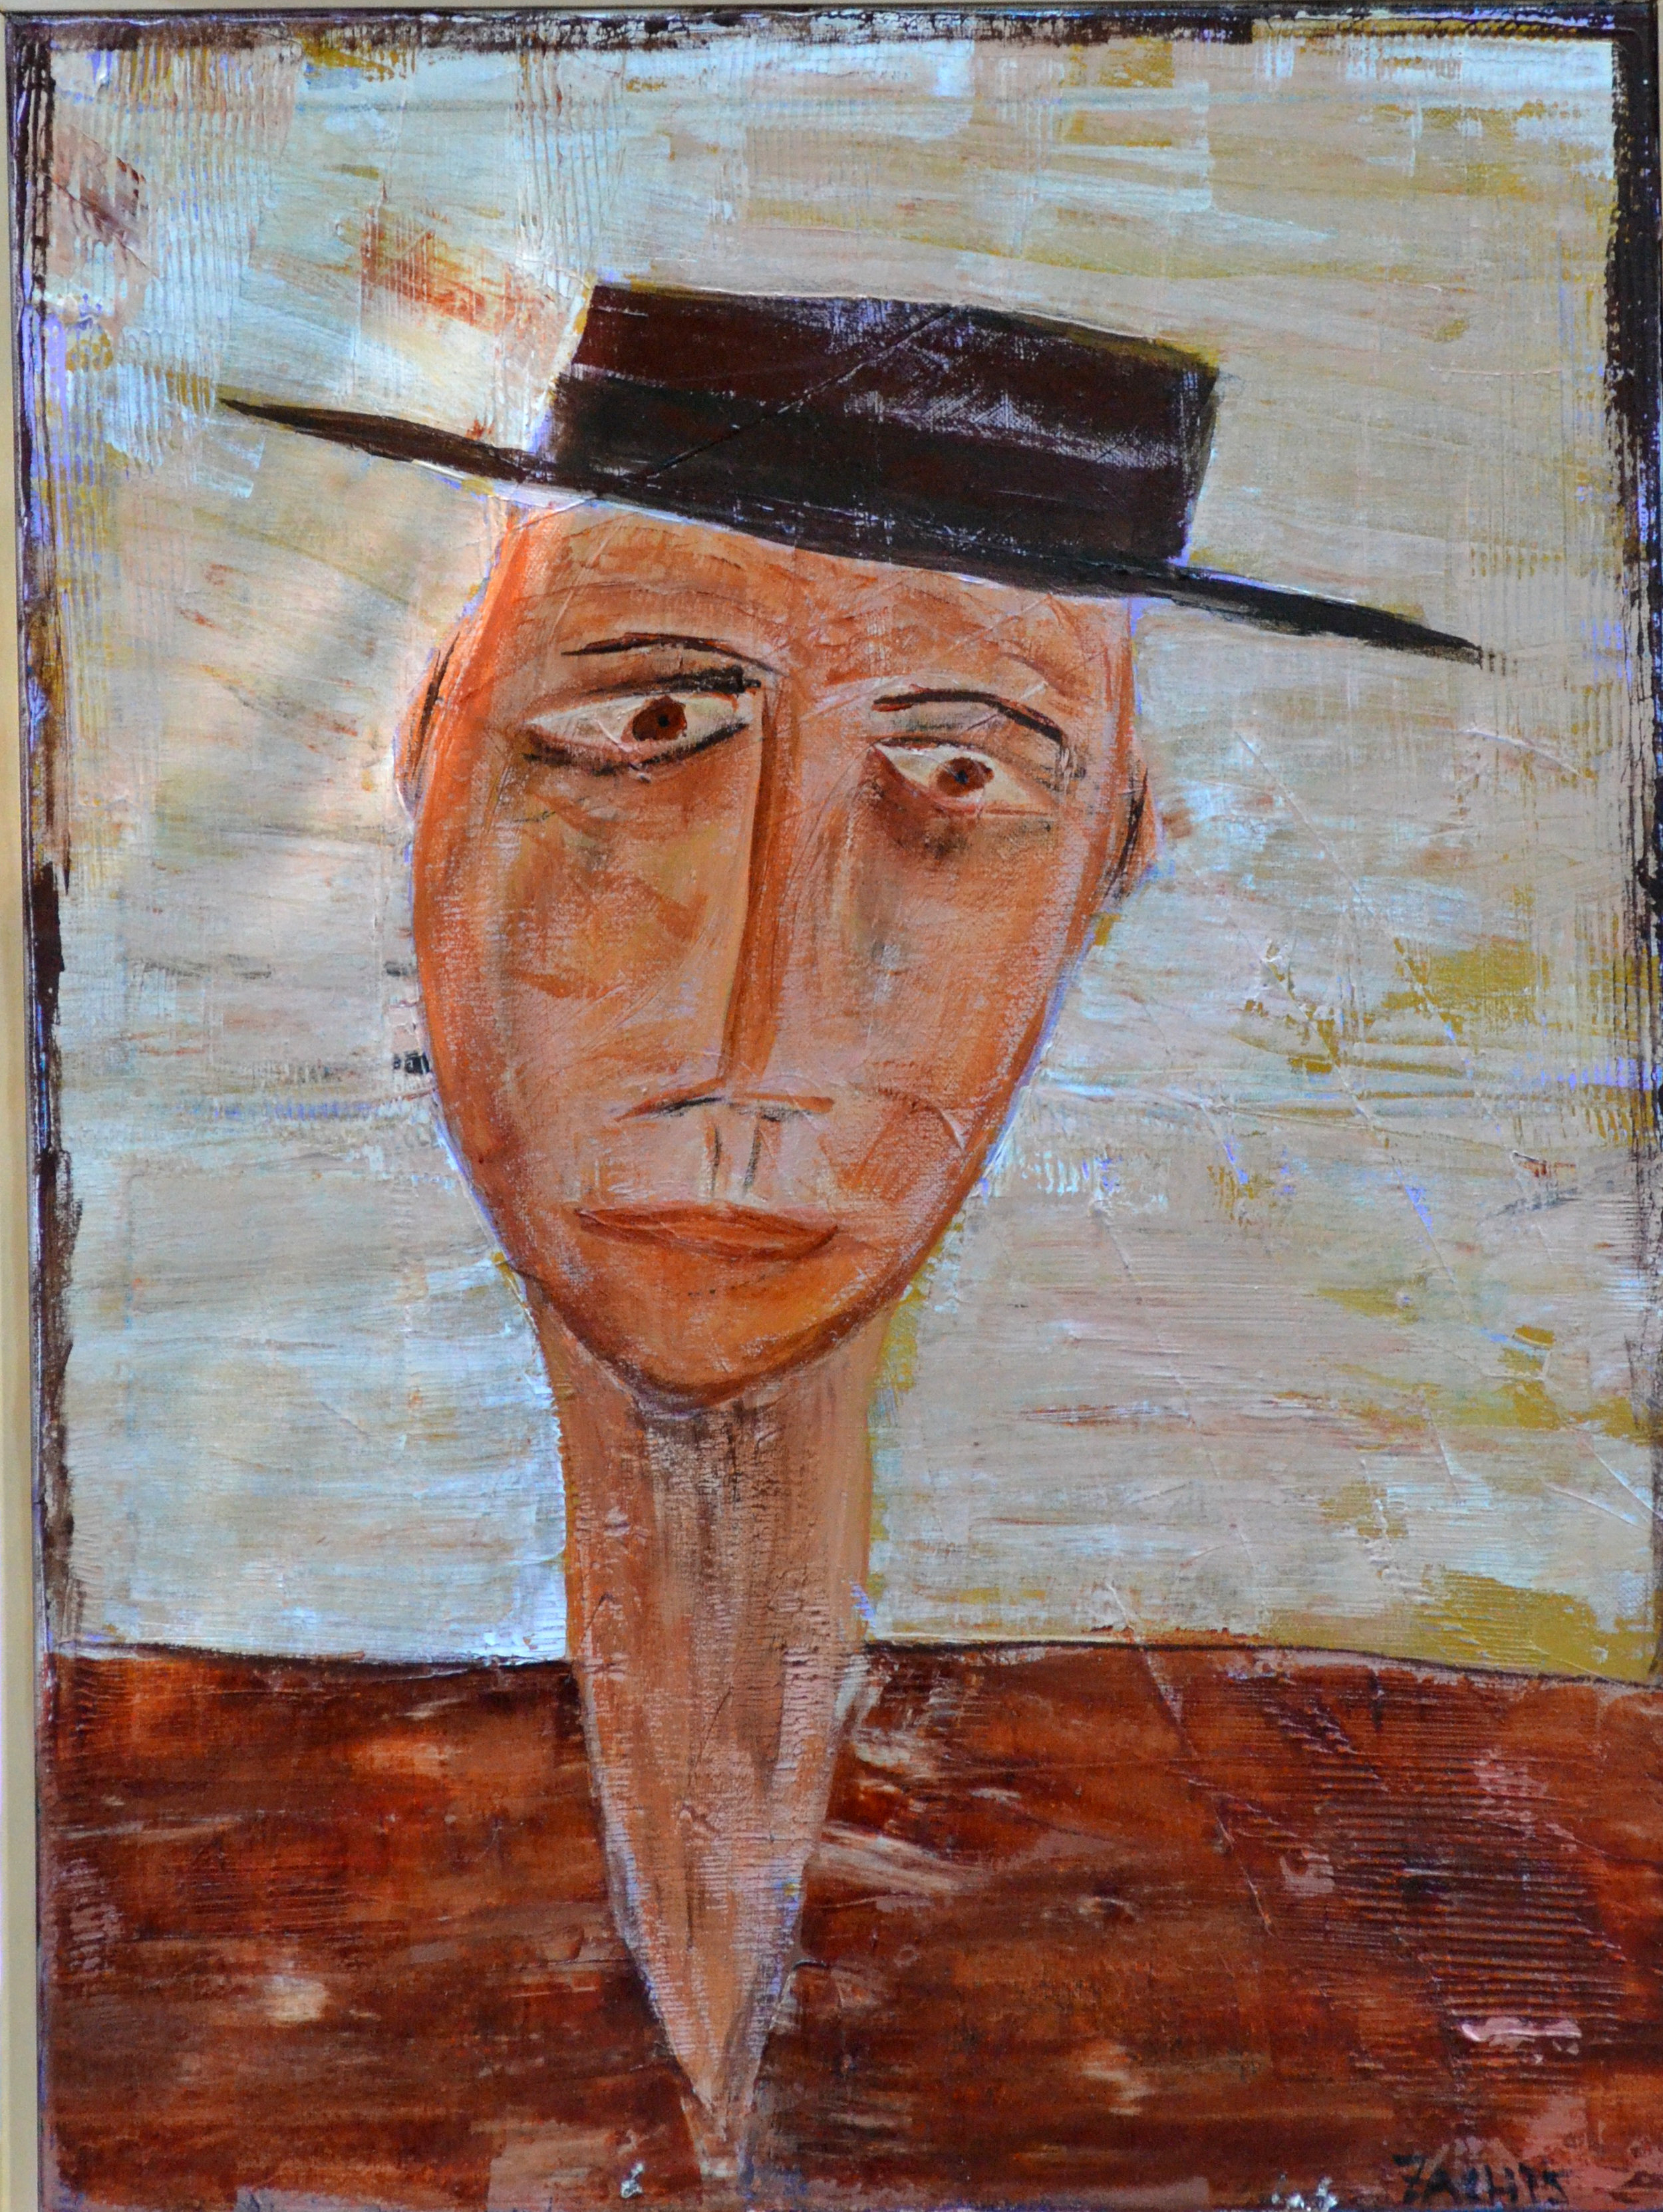 Man in Hat #2 (2015, 18 by 24)